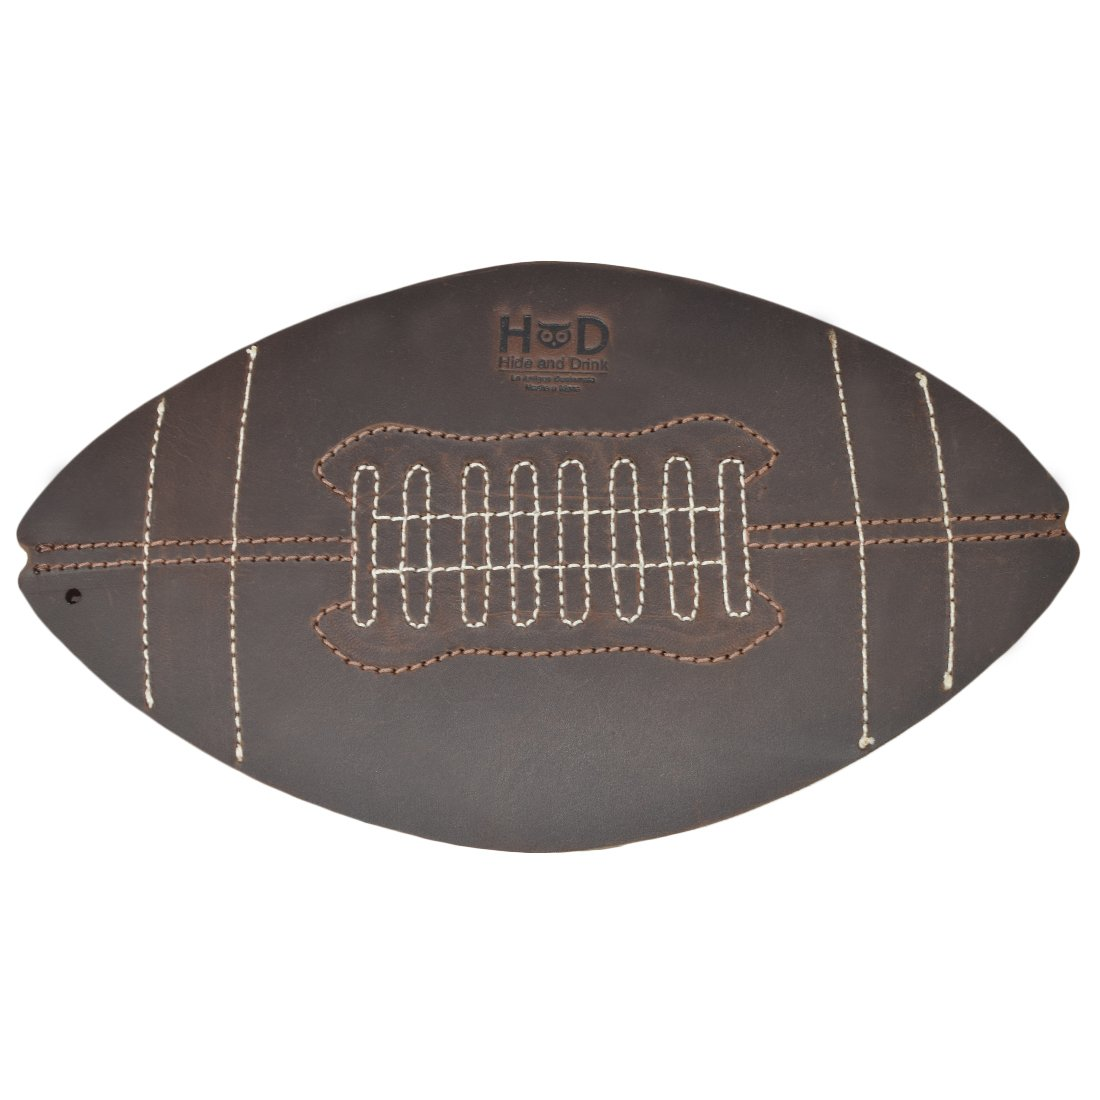 Thick Leather Football Game Day Drinks Mat/Hot Pad/Beer Mat Decor Handmade by Hide & Drink :: Bourbon Brown by Hide & Drink